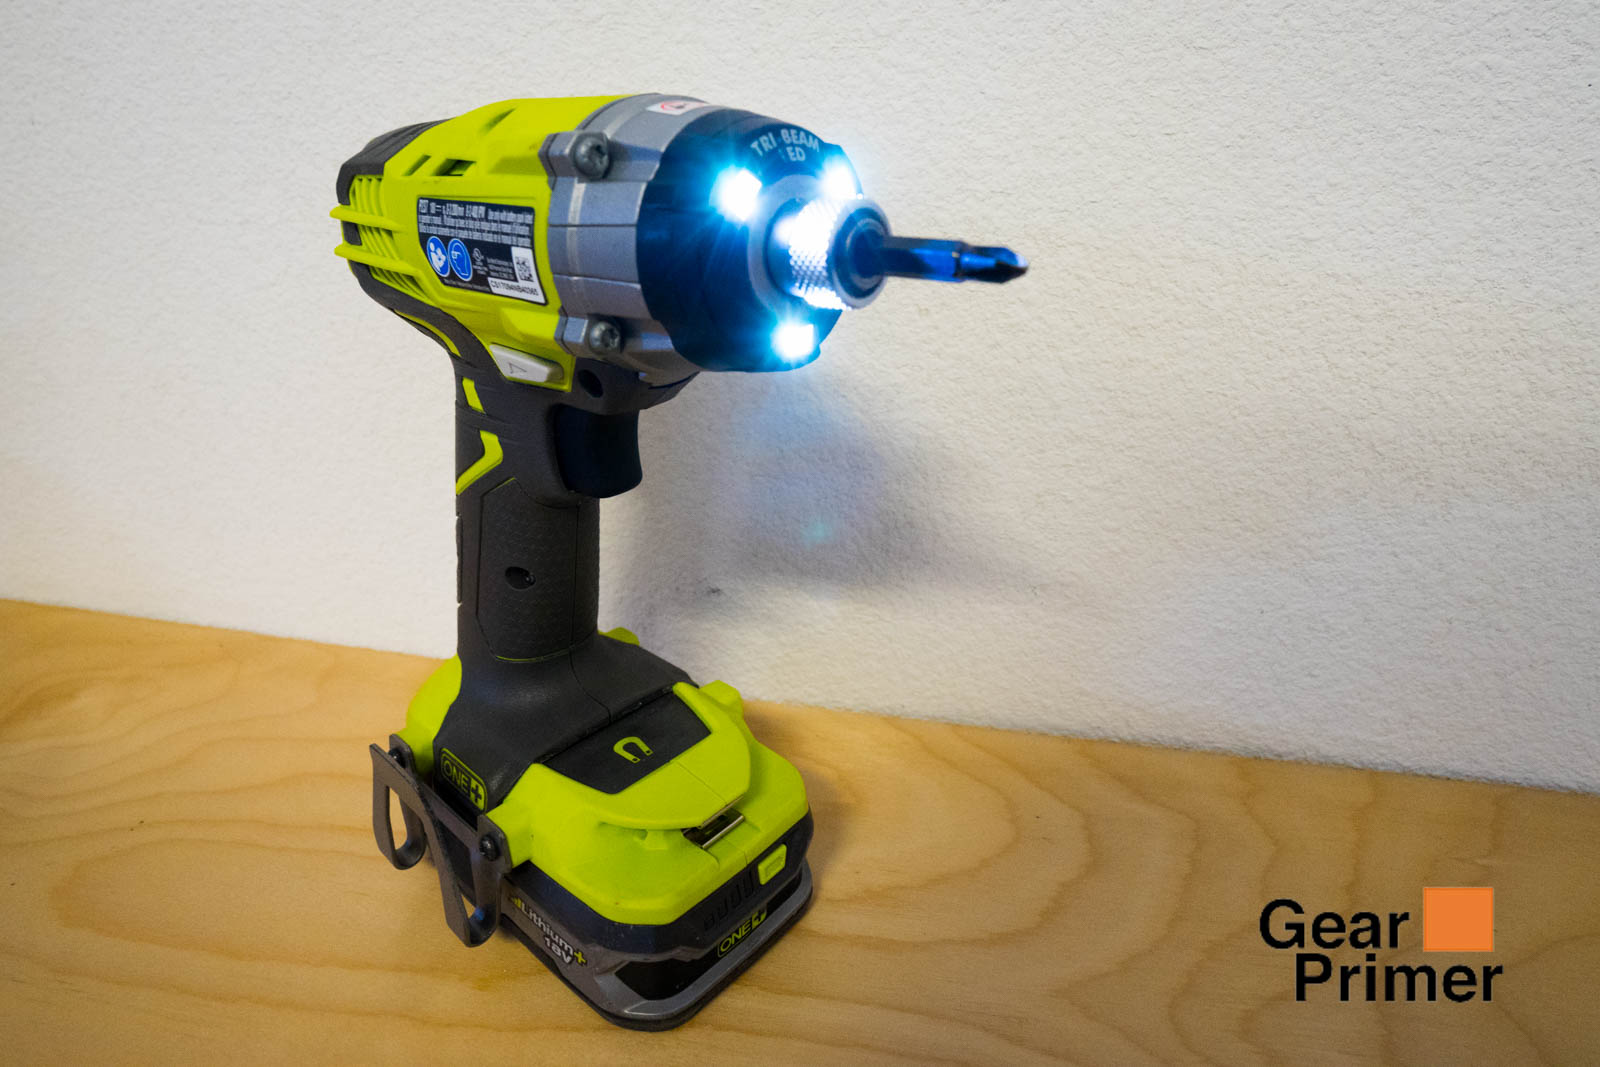 Ryobi P237 Review | Impact Driver | 18 Volt ONE+ 3-Speed 6